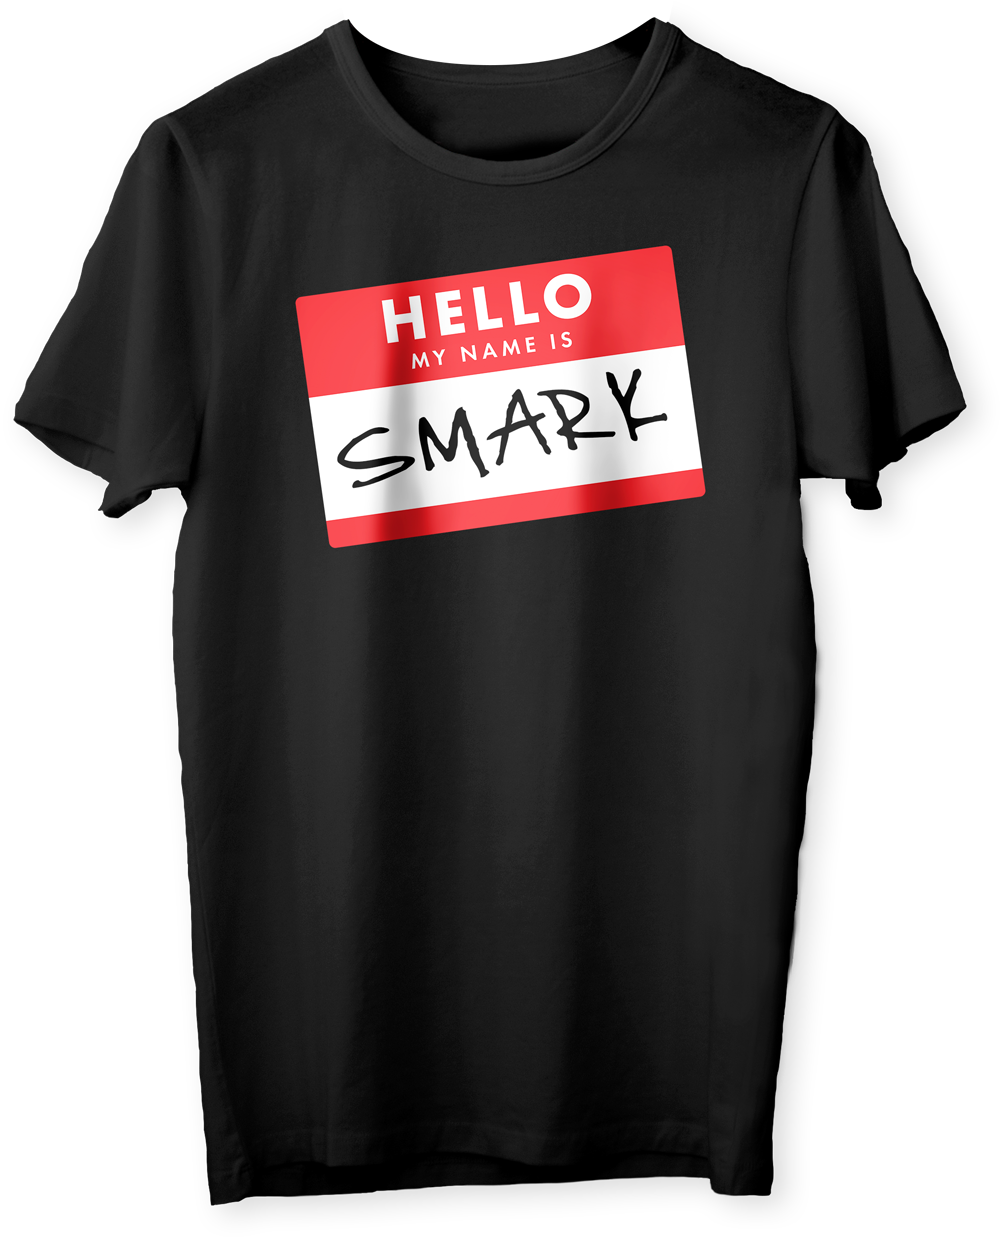 The Smark Collection - Mouthpiece Merch Table